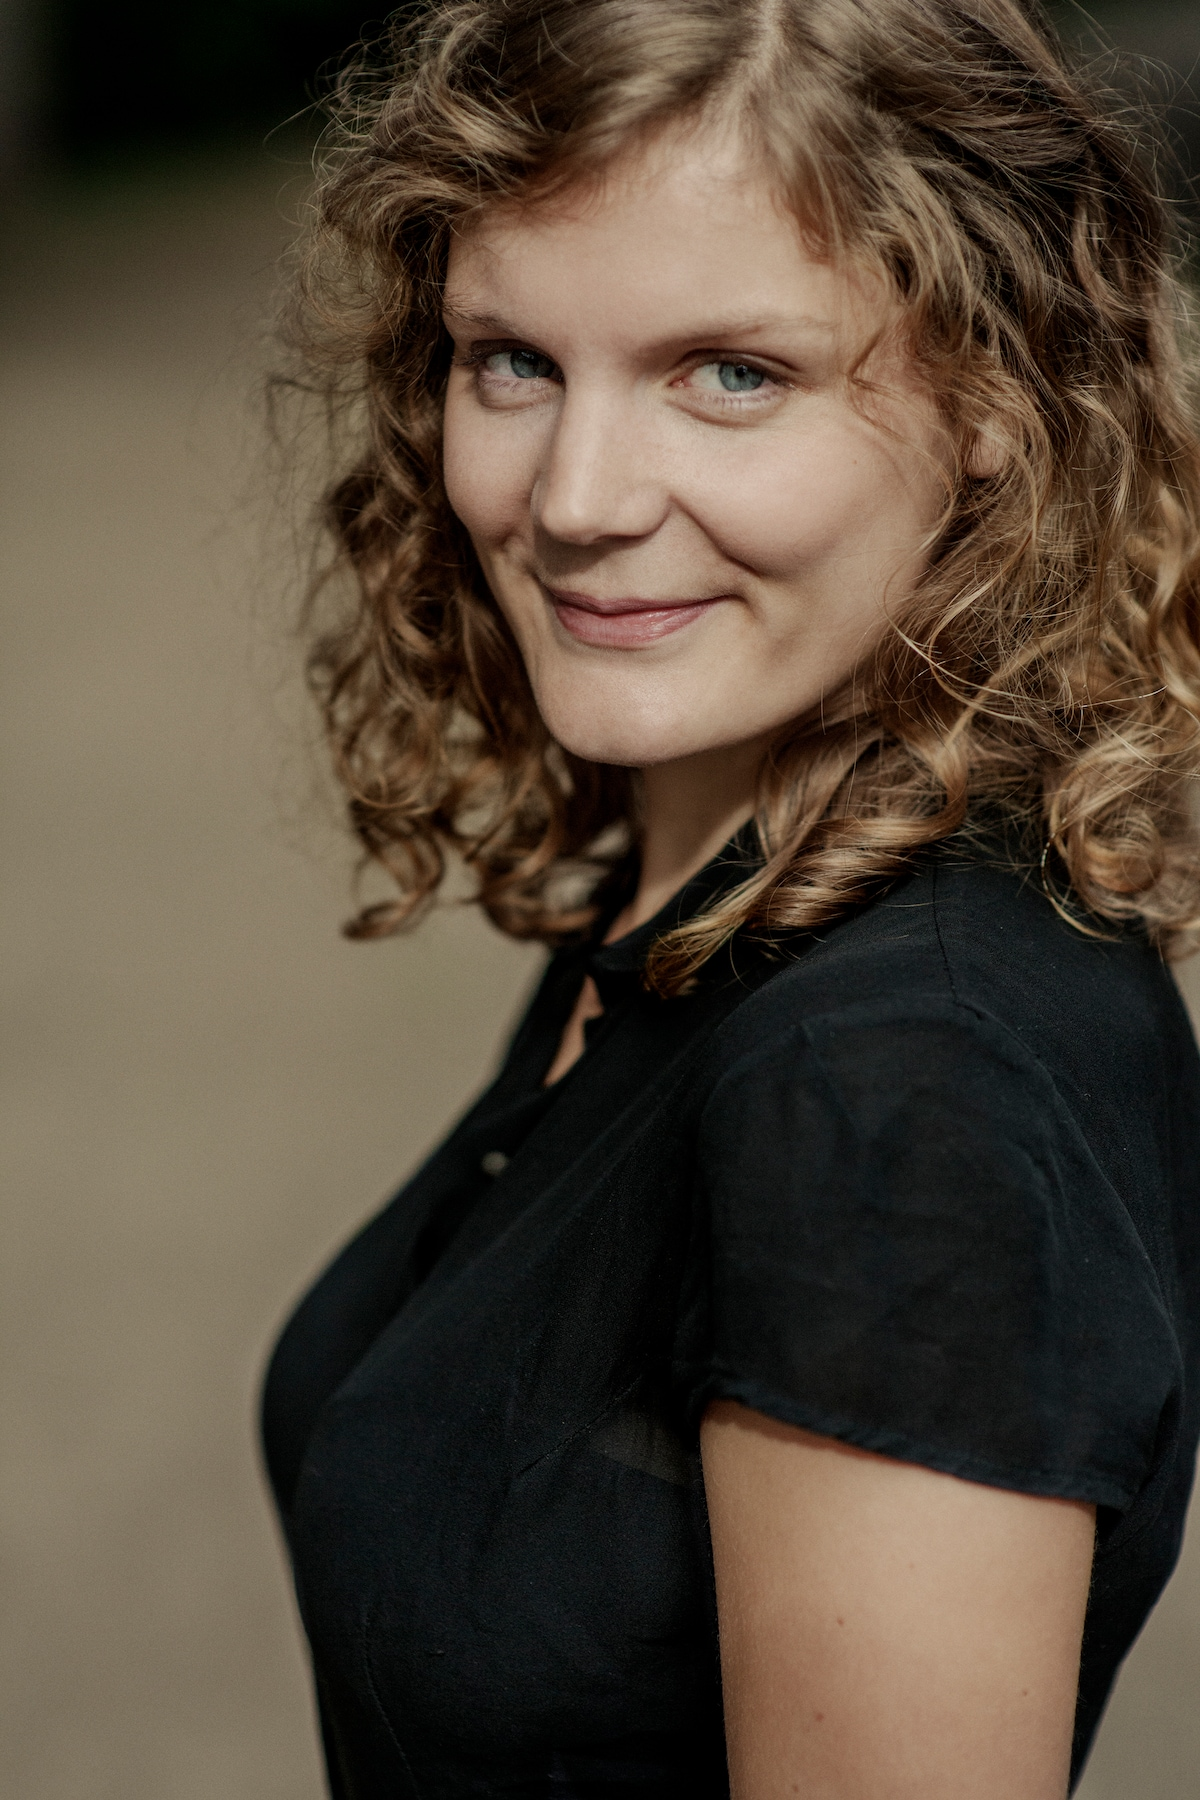 Name: Nona Buhrs Works in Theatre From Amsterdam